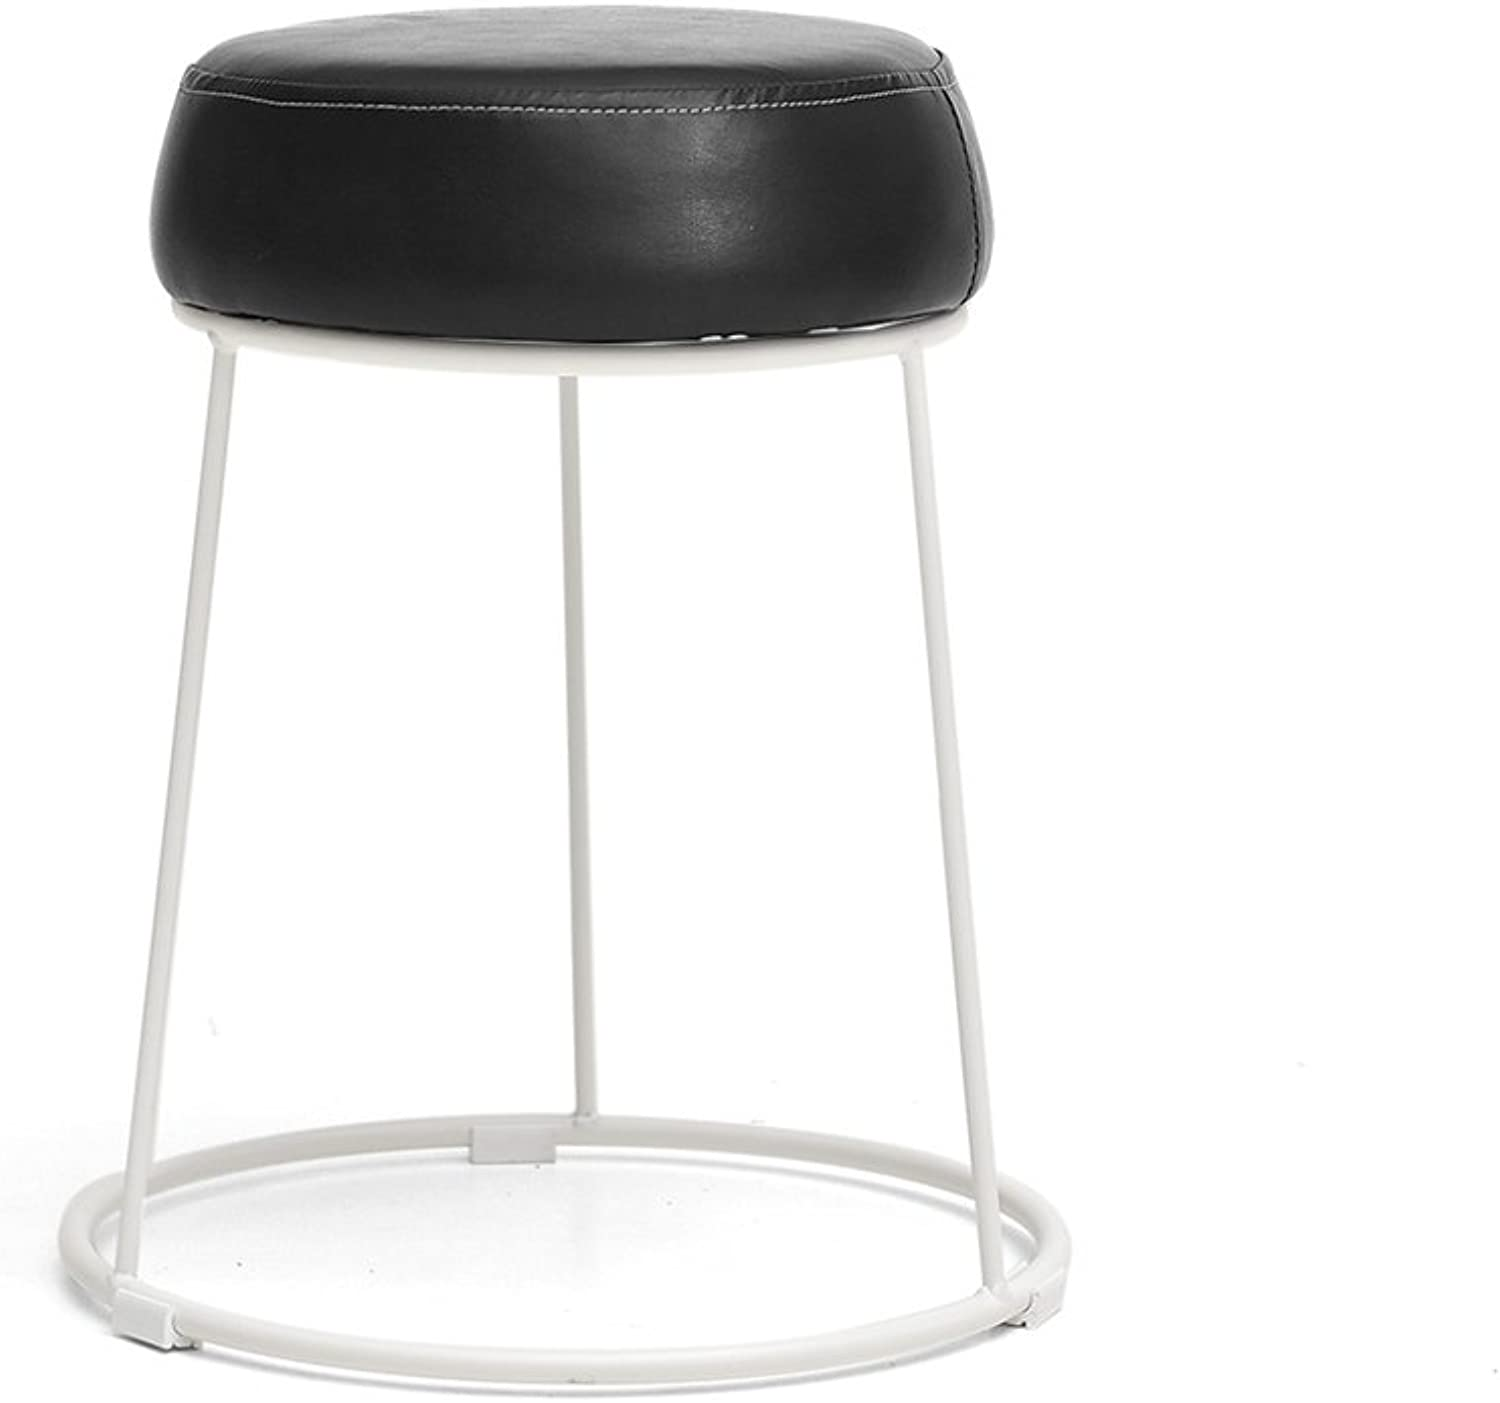 Home Stools, Iron Stools, Leather Art Benches, Creative Table Stools, Minimalist Table Stools, Fashionable Dressing Stools, Makeup Stools, Can Be Placed, Easy to Care, Space Saving (color   E)